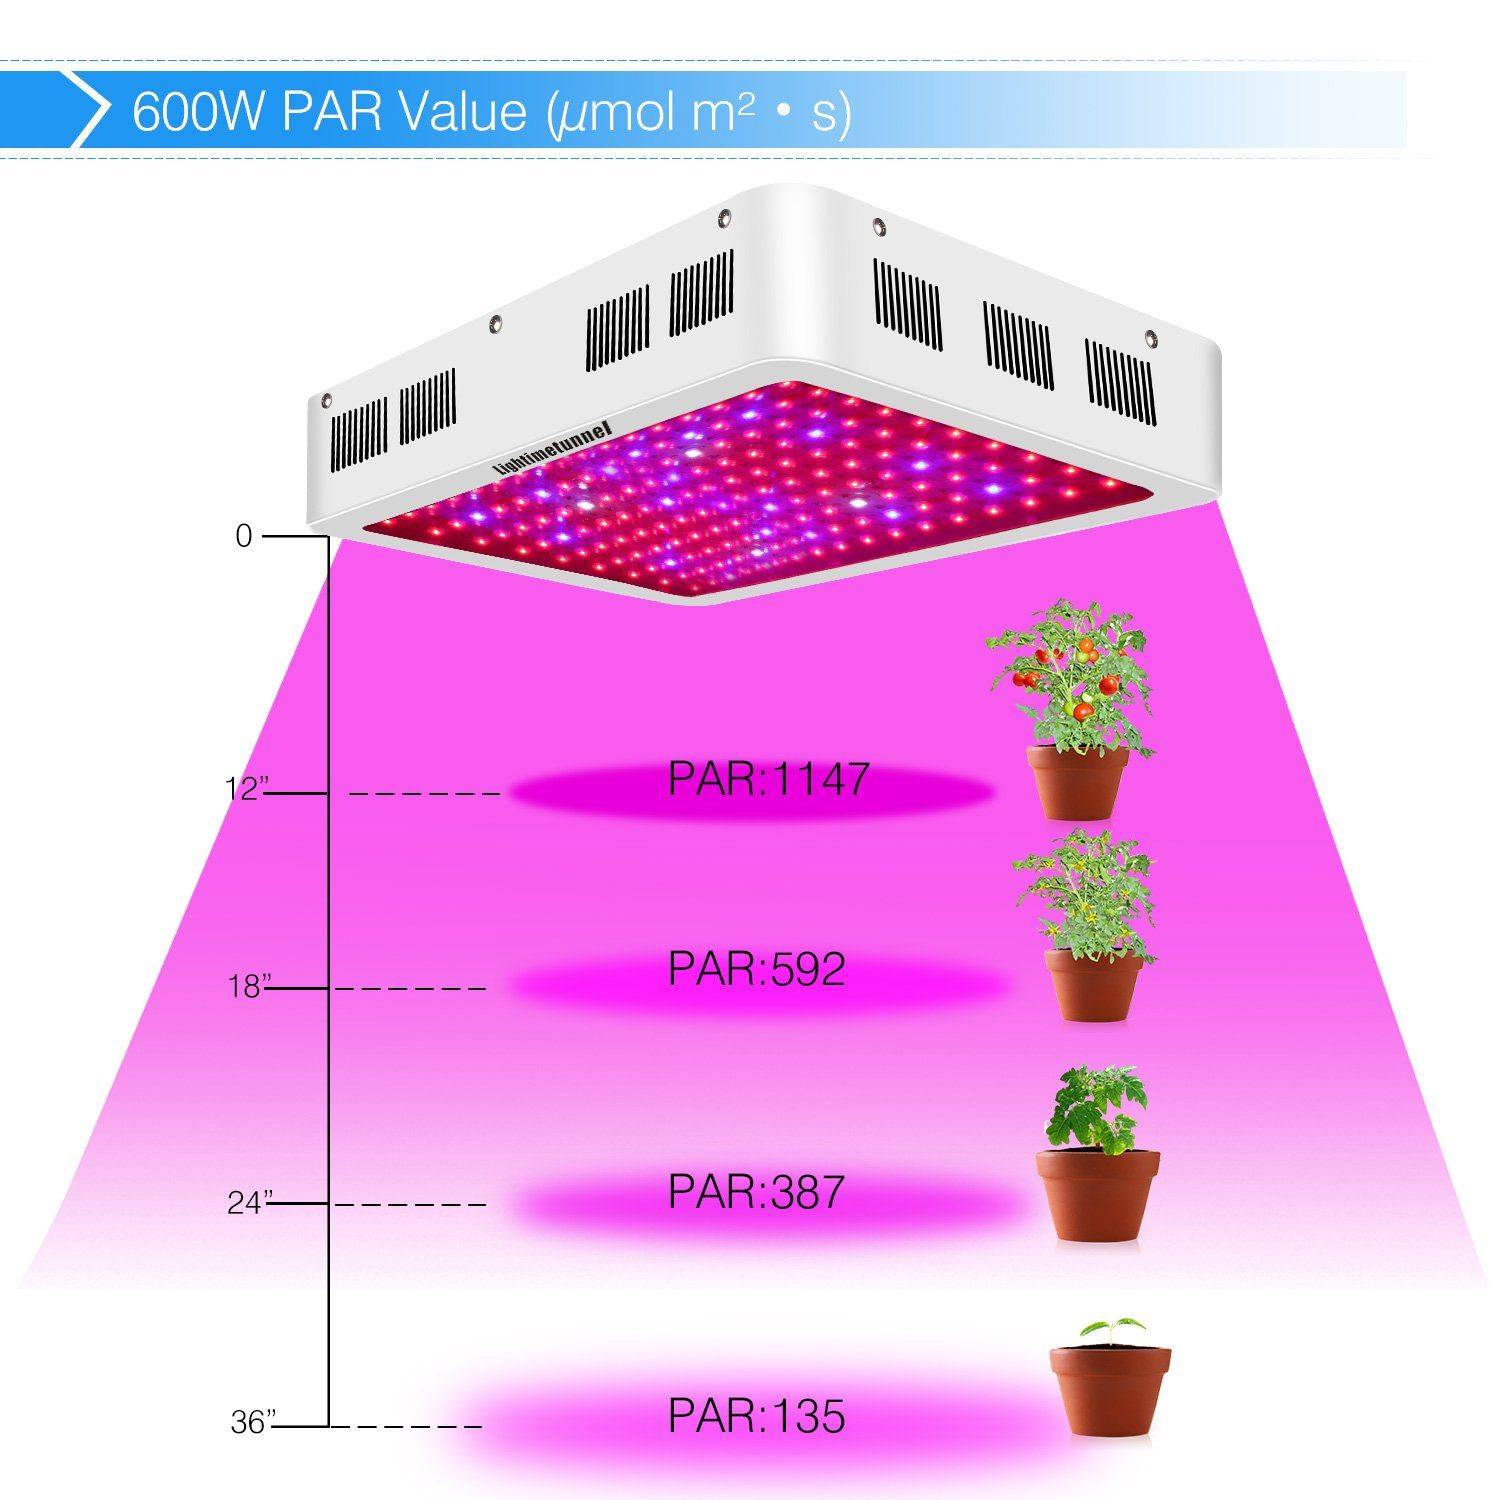 Lightimetunnel Led Grow Light600w Full Spectrum Growing Light Fixtures For Greenhouse Hydroponic Indoor Plants Veg Growing Plants Indoors Hydroponics Led Grow